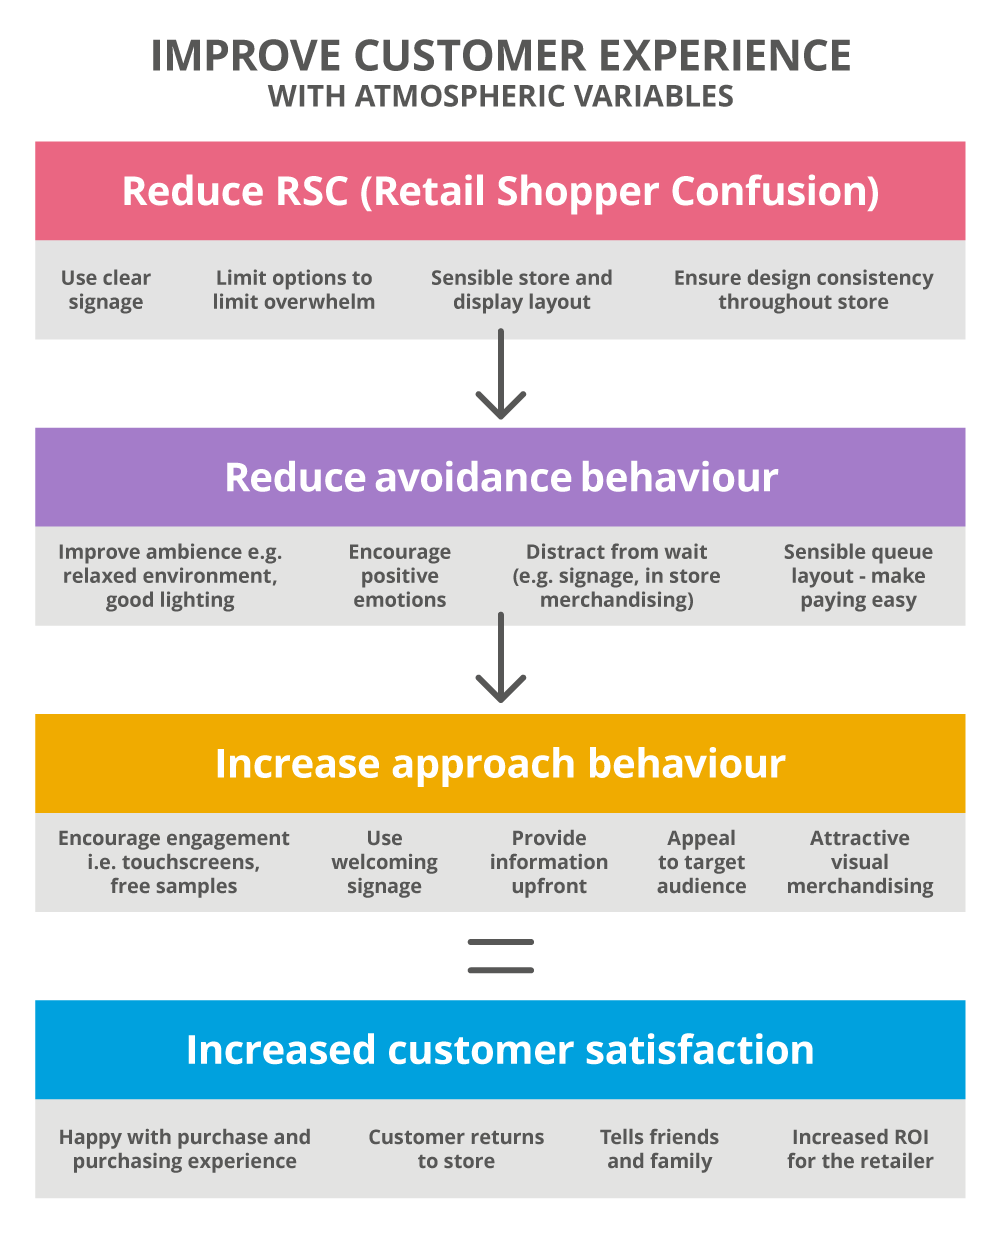 How to improve customer experience with atmospheric variables, a flow chart guide